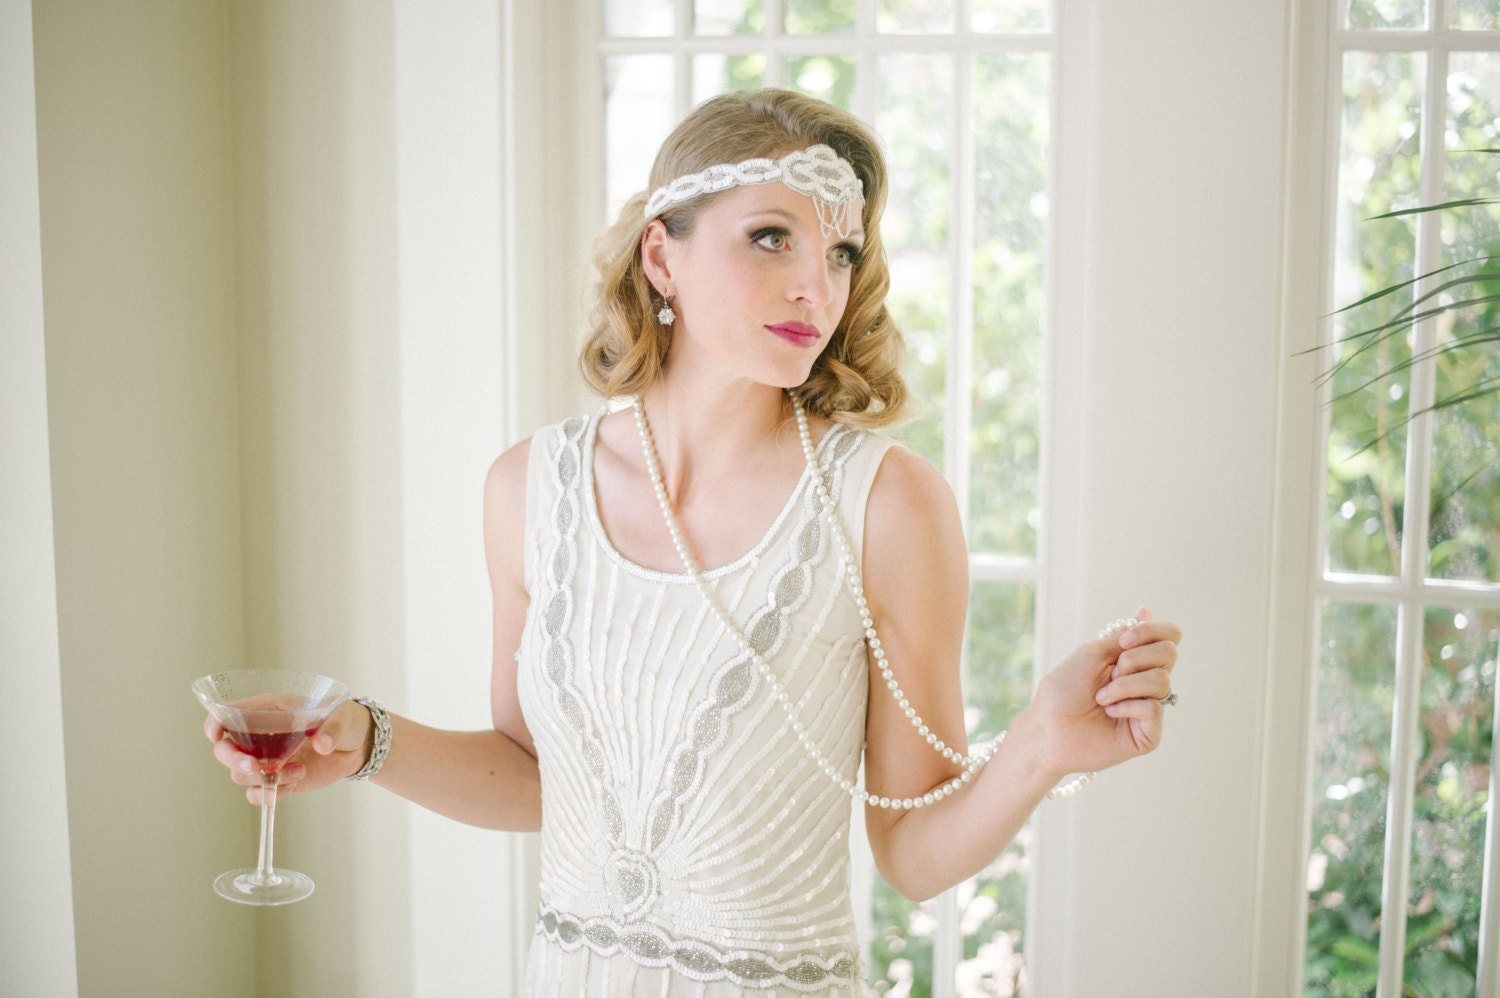 Long Pearl Necklace Great Gatsby Vintage Inspired 1920s Vibe Robe Charleston Downton Abbey Mod